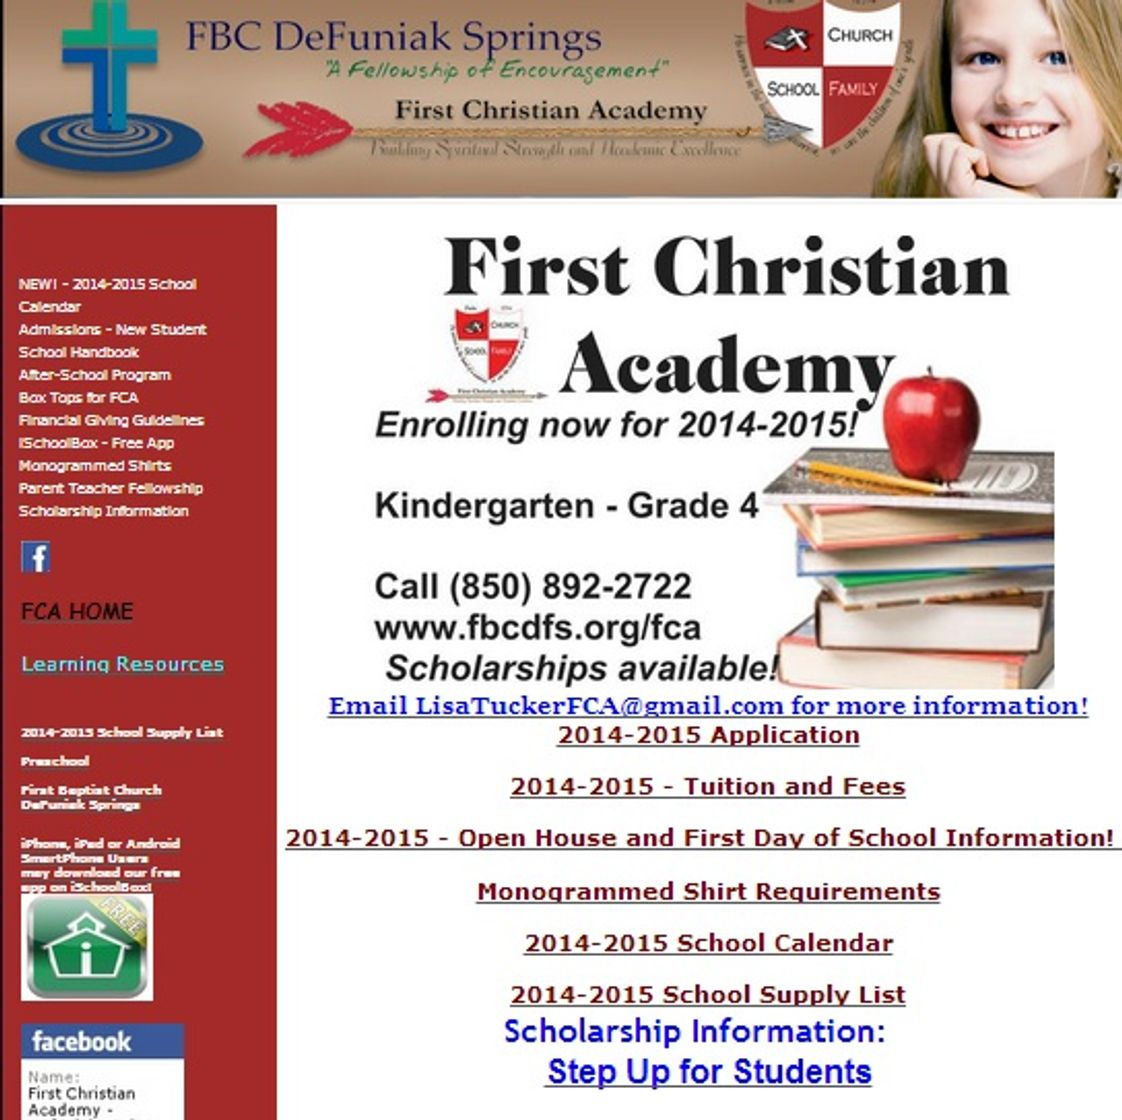 First Christian Academy Photo - First Christian Academy - DeFuniak Springs